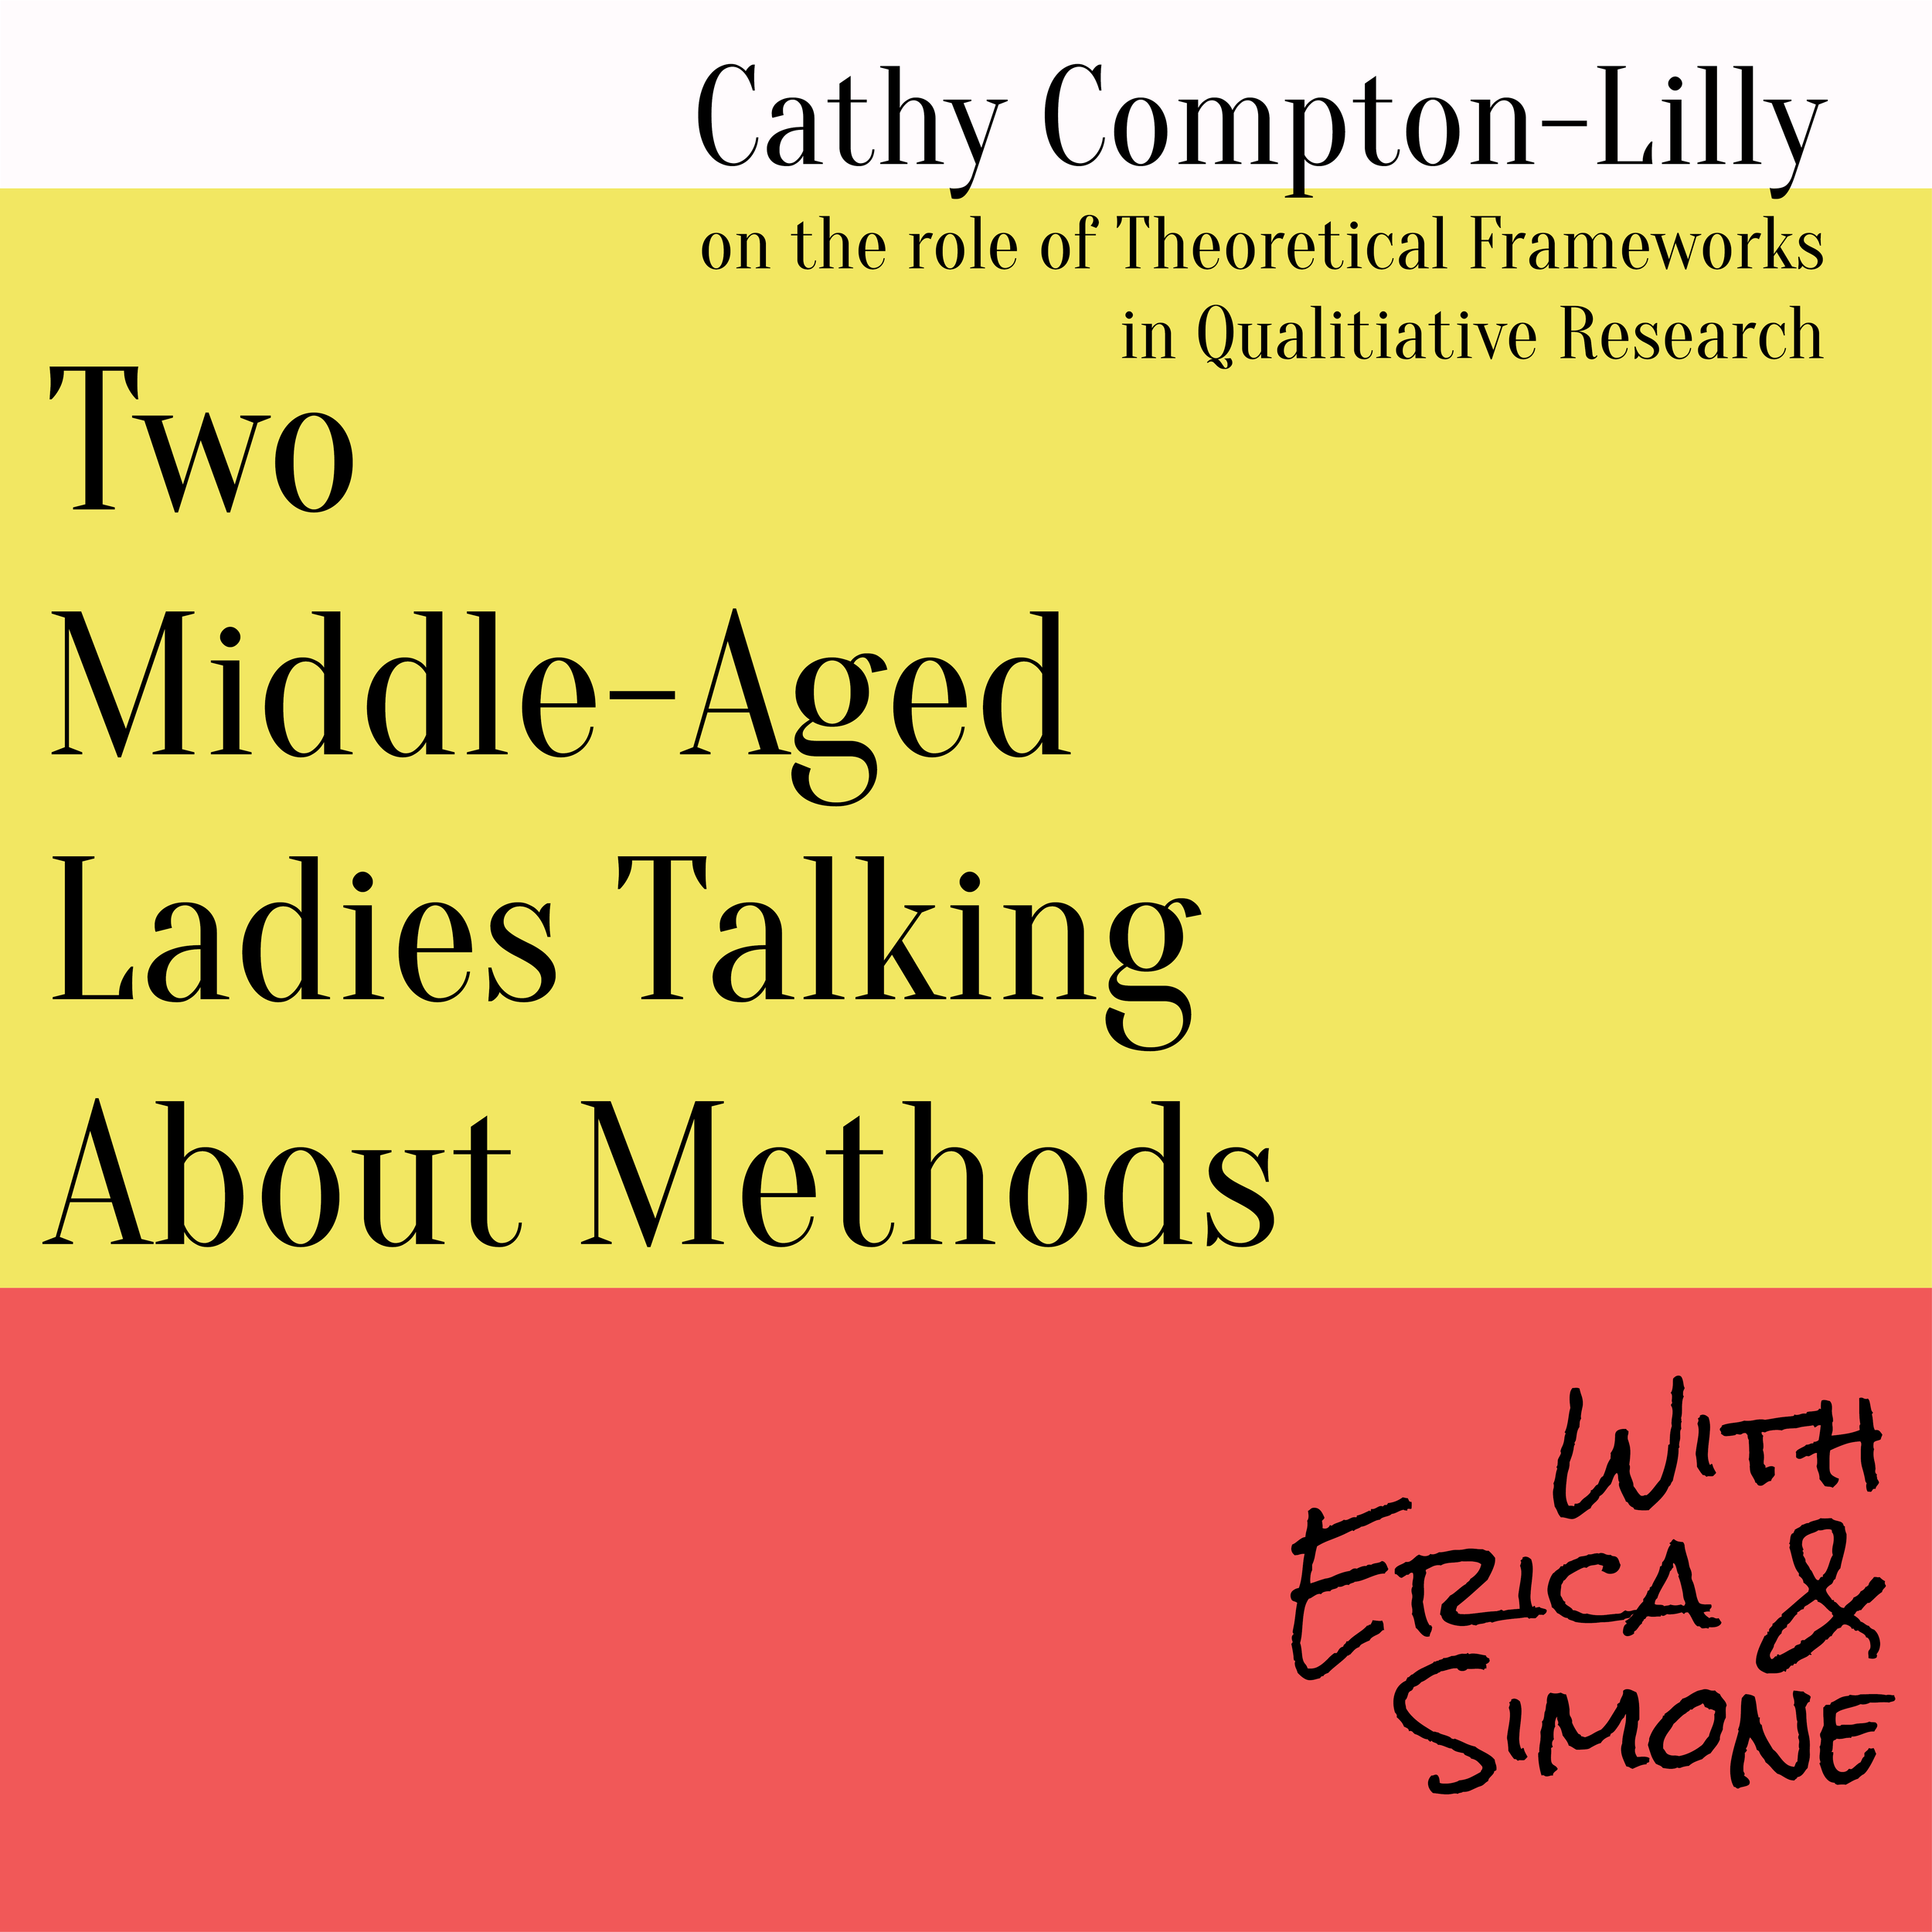 Cahty Compton-Lilly on the role of Theoretical Frameworks in Qualitative Research